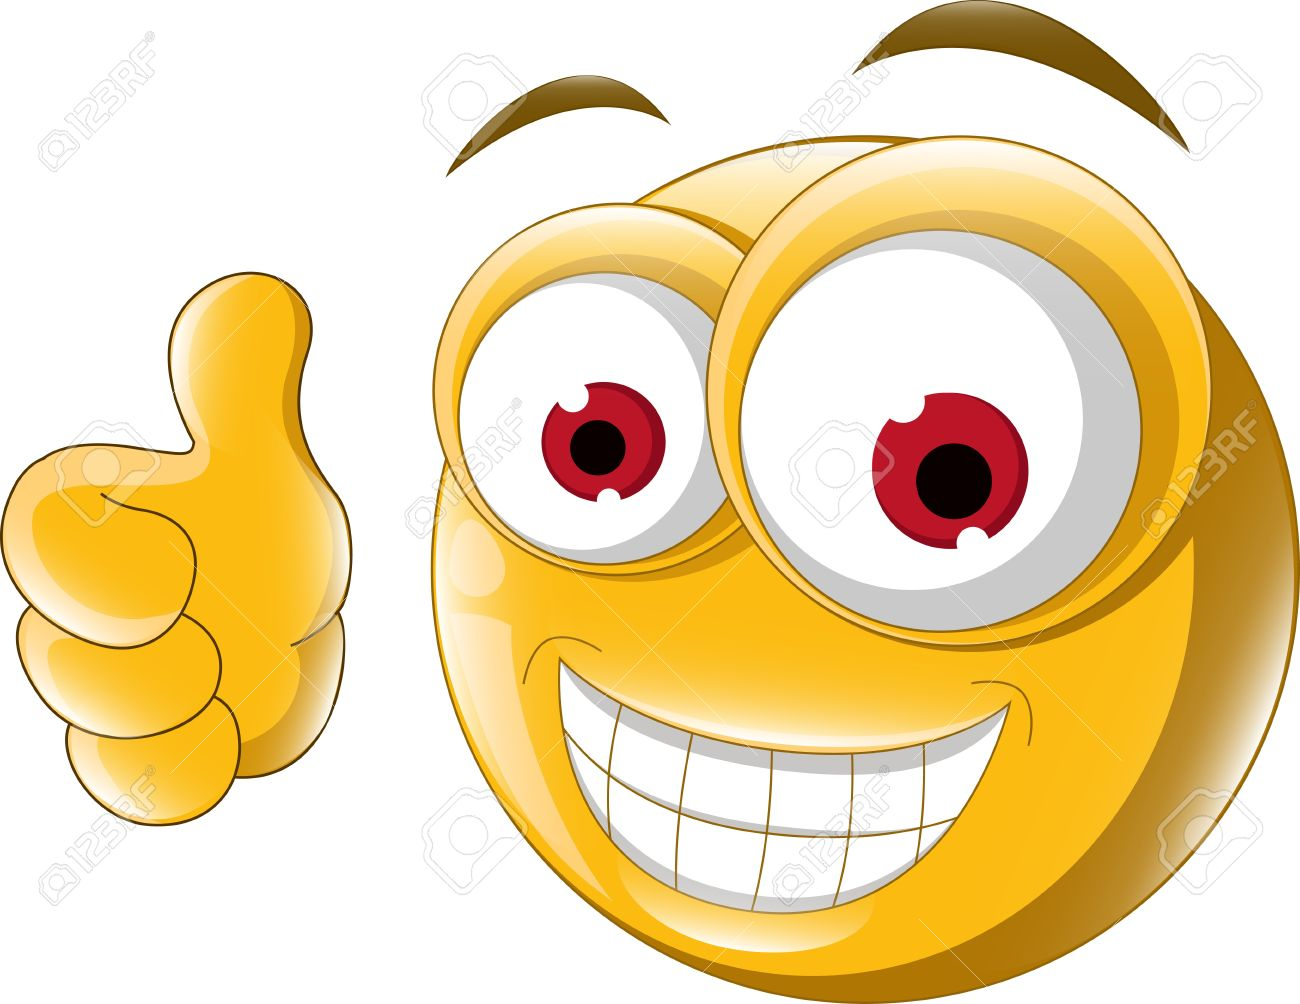 Smiley face thumbs up clipart image Happy face with thumbs up clipart - ClipartFest image